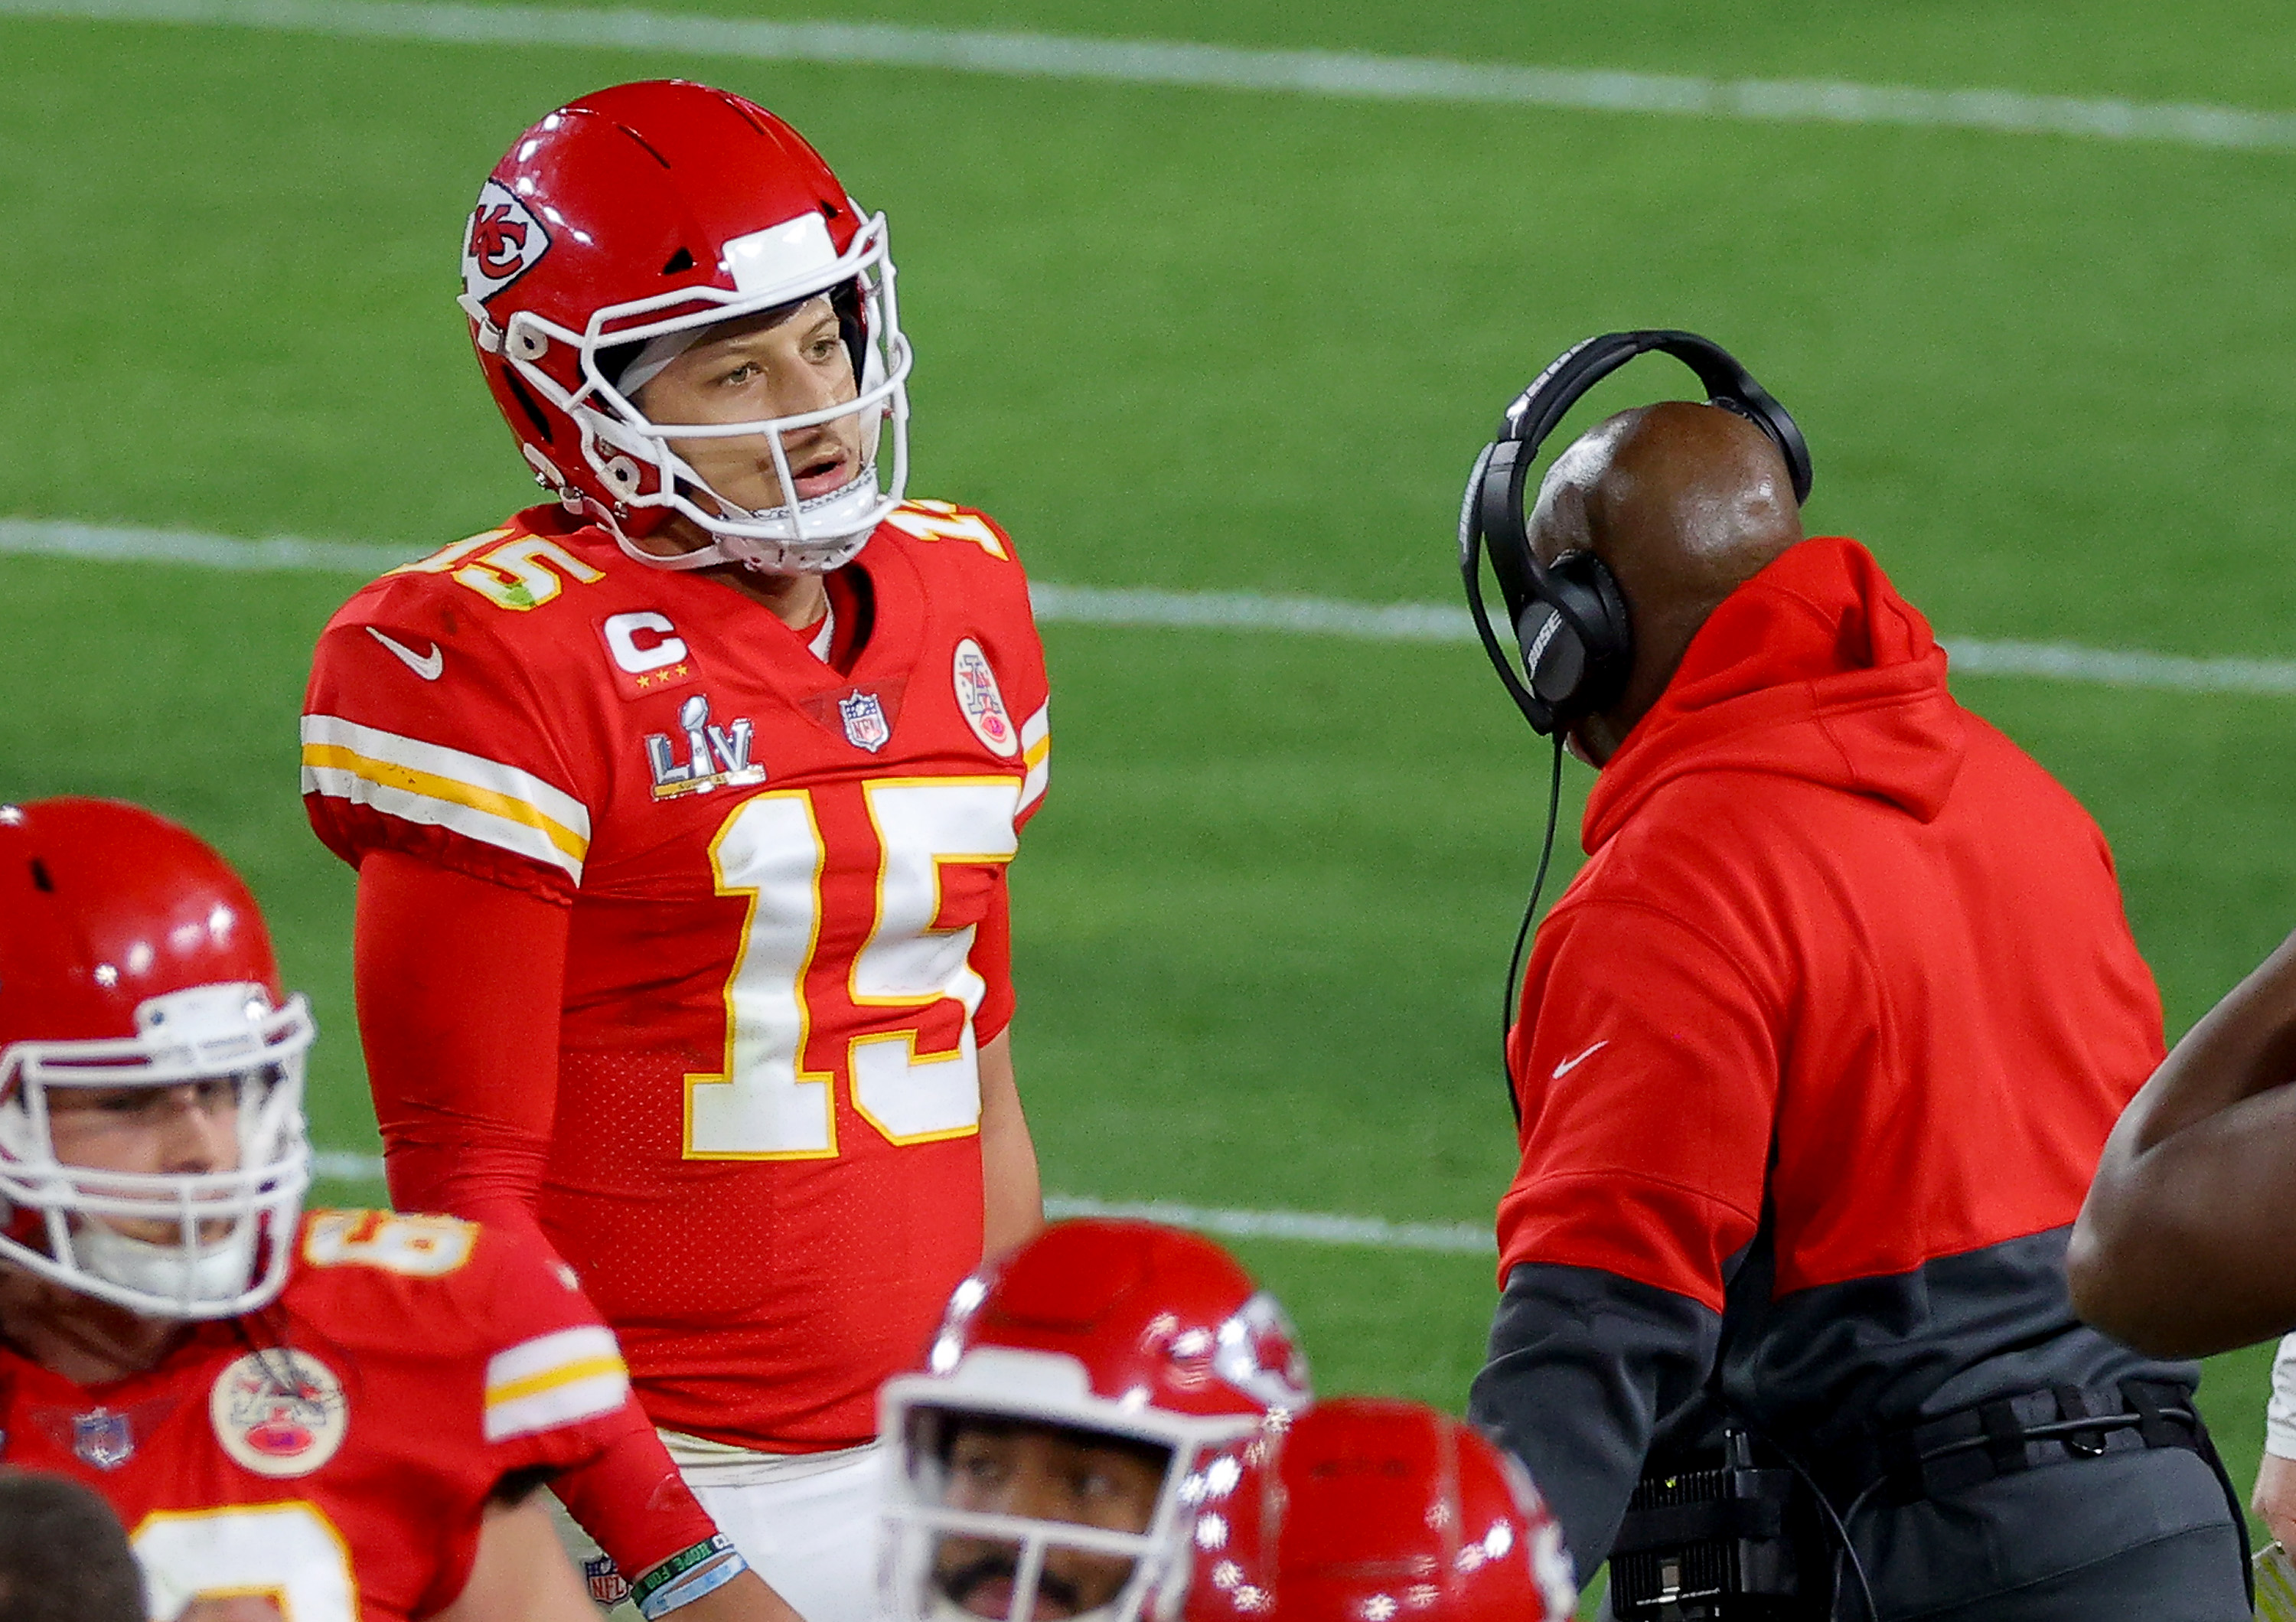 Patrick Mahomes' Mom, Fiancée And Travis Kelce's Girlfriend Rip Refs Throughout Super Bowl During Chiefs' Loss